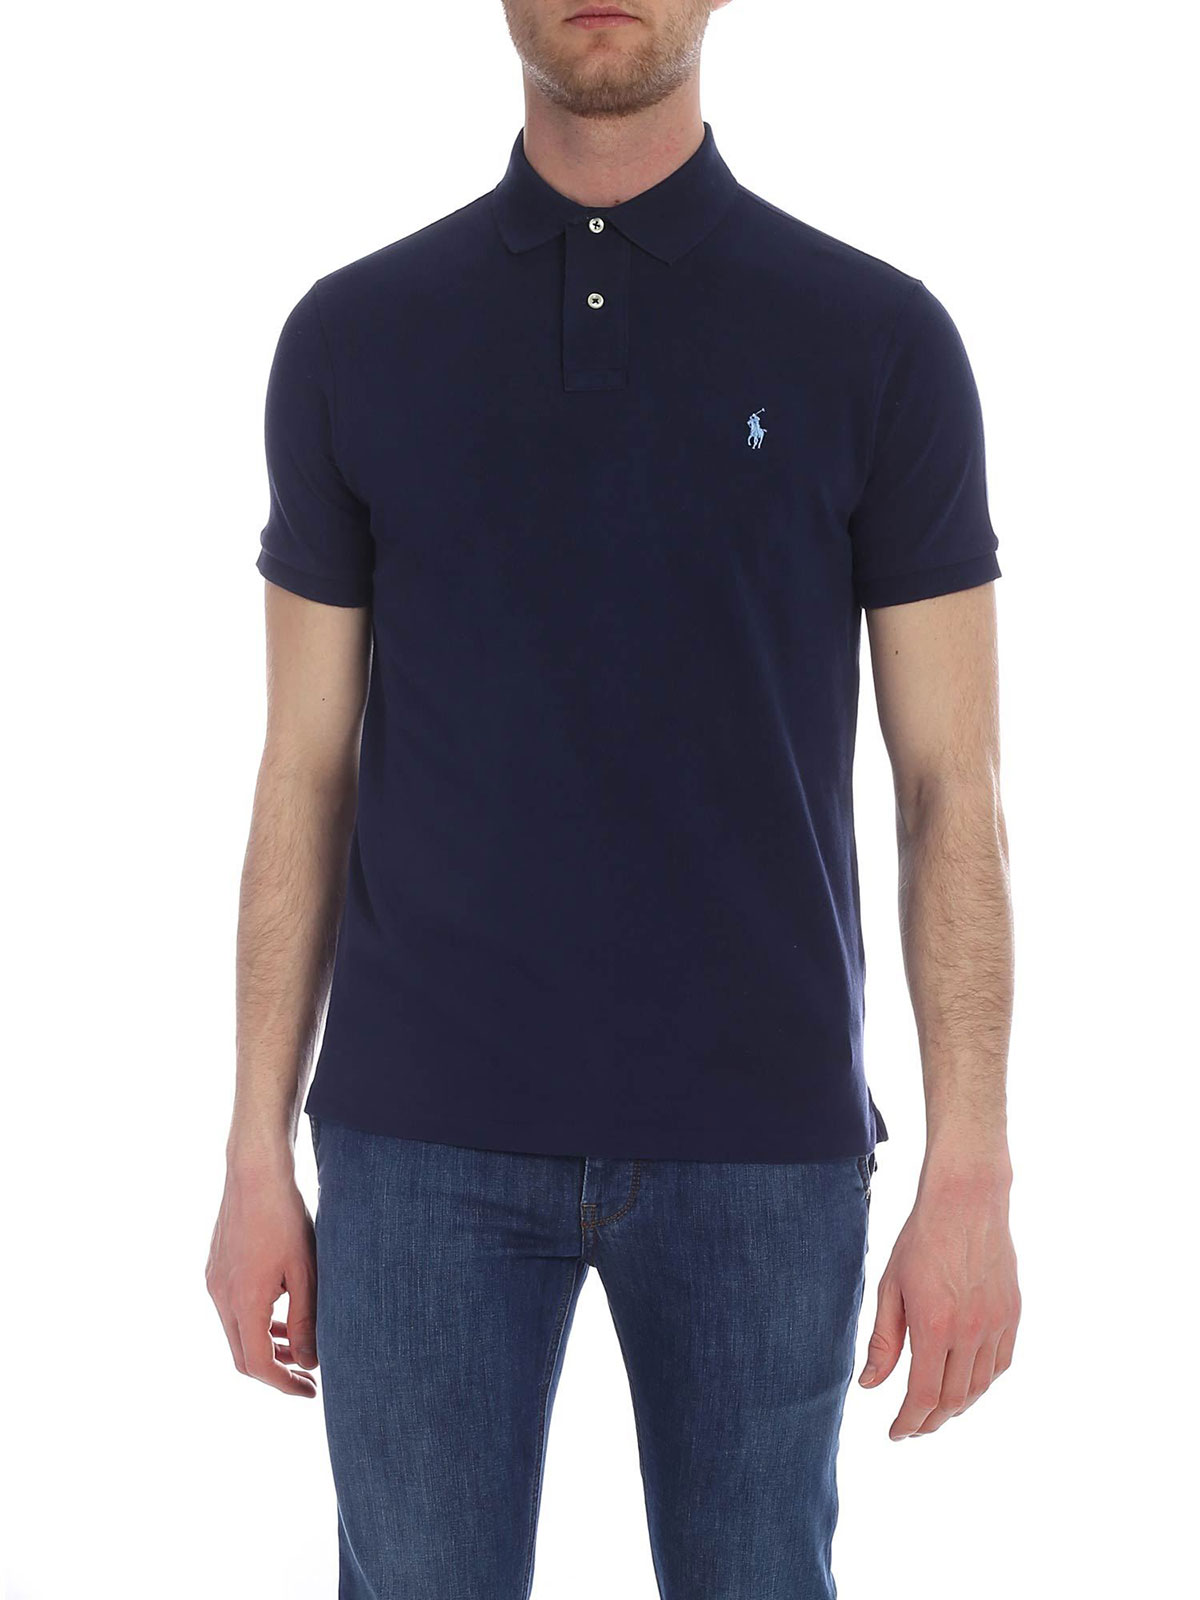 818707bade61c POLO RALPH LAUREN Men s Slim Fit Polo Shirt Navy Blue